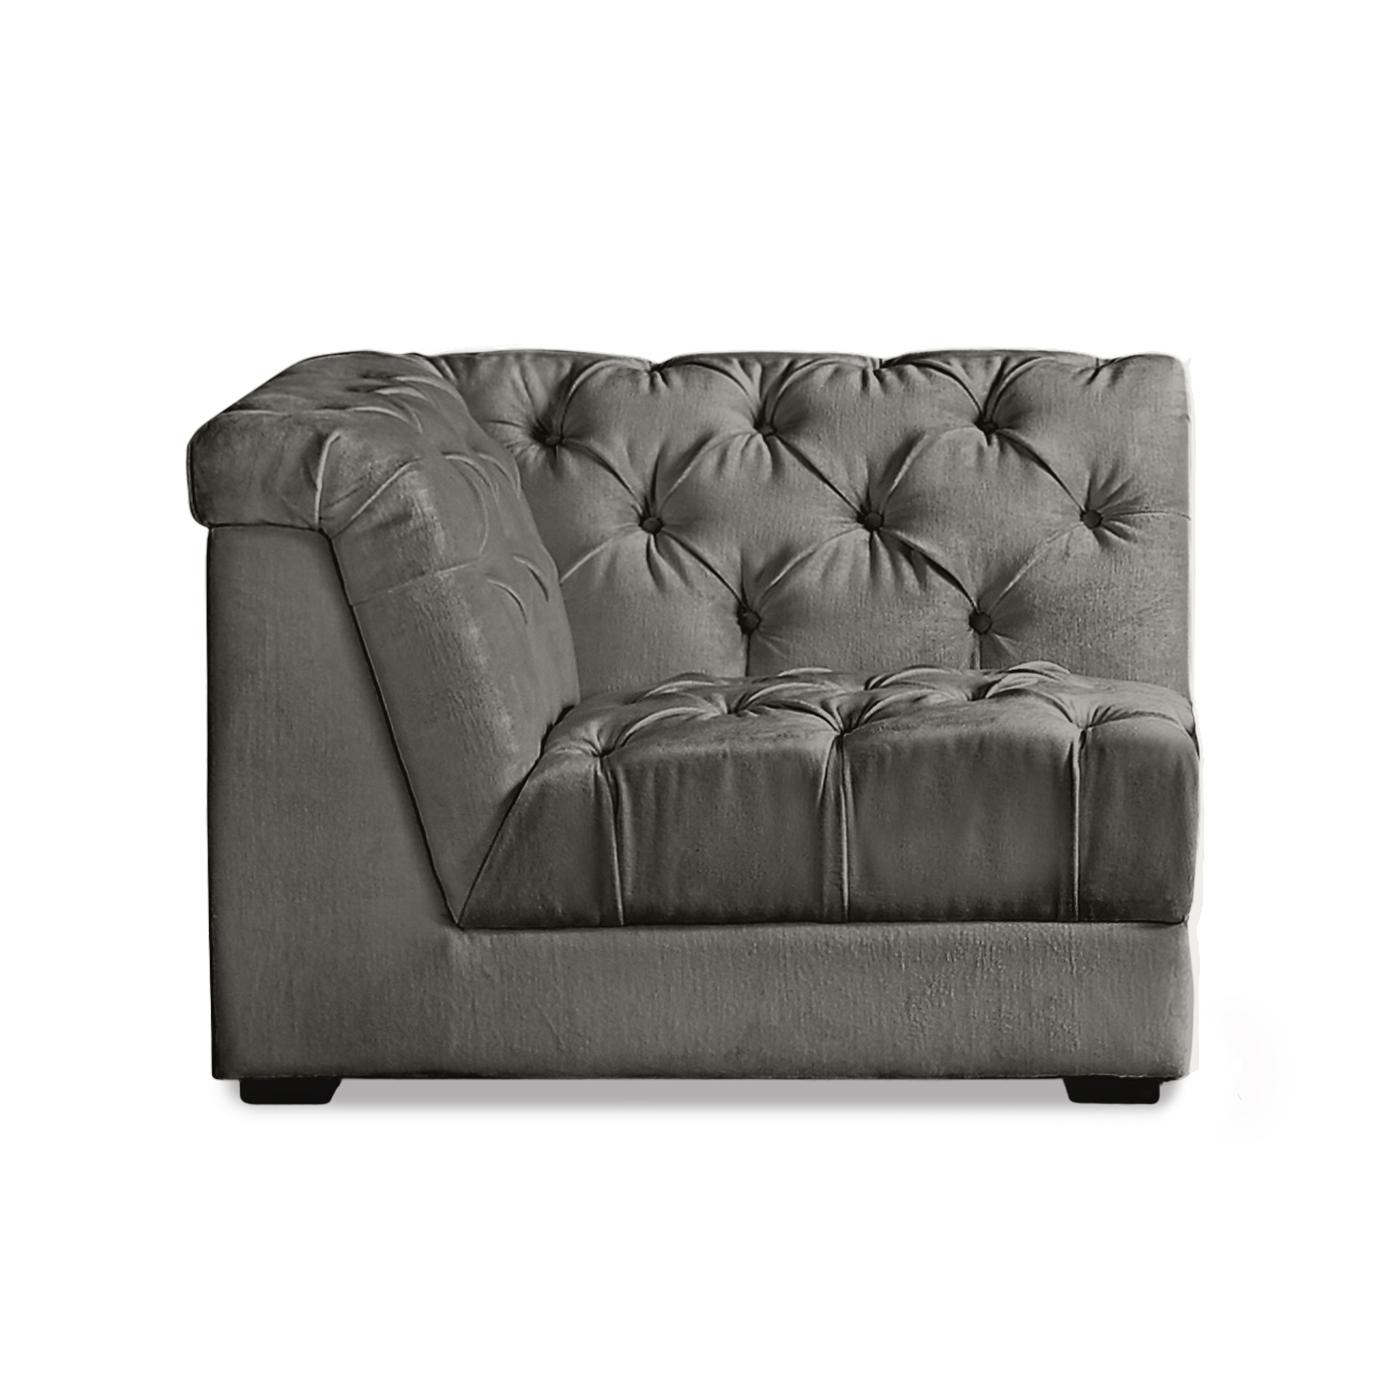 Ultra Charcoal Sectional Modular Sofa | Modern Furniture pertaining to Modular Sofas